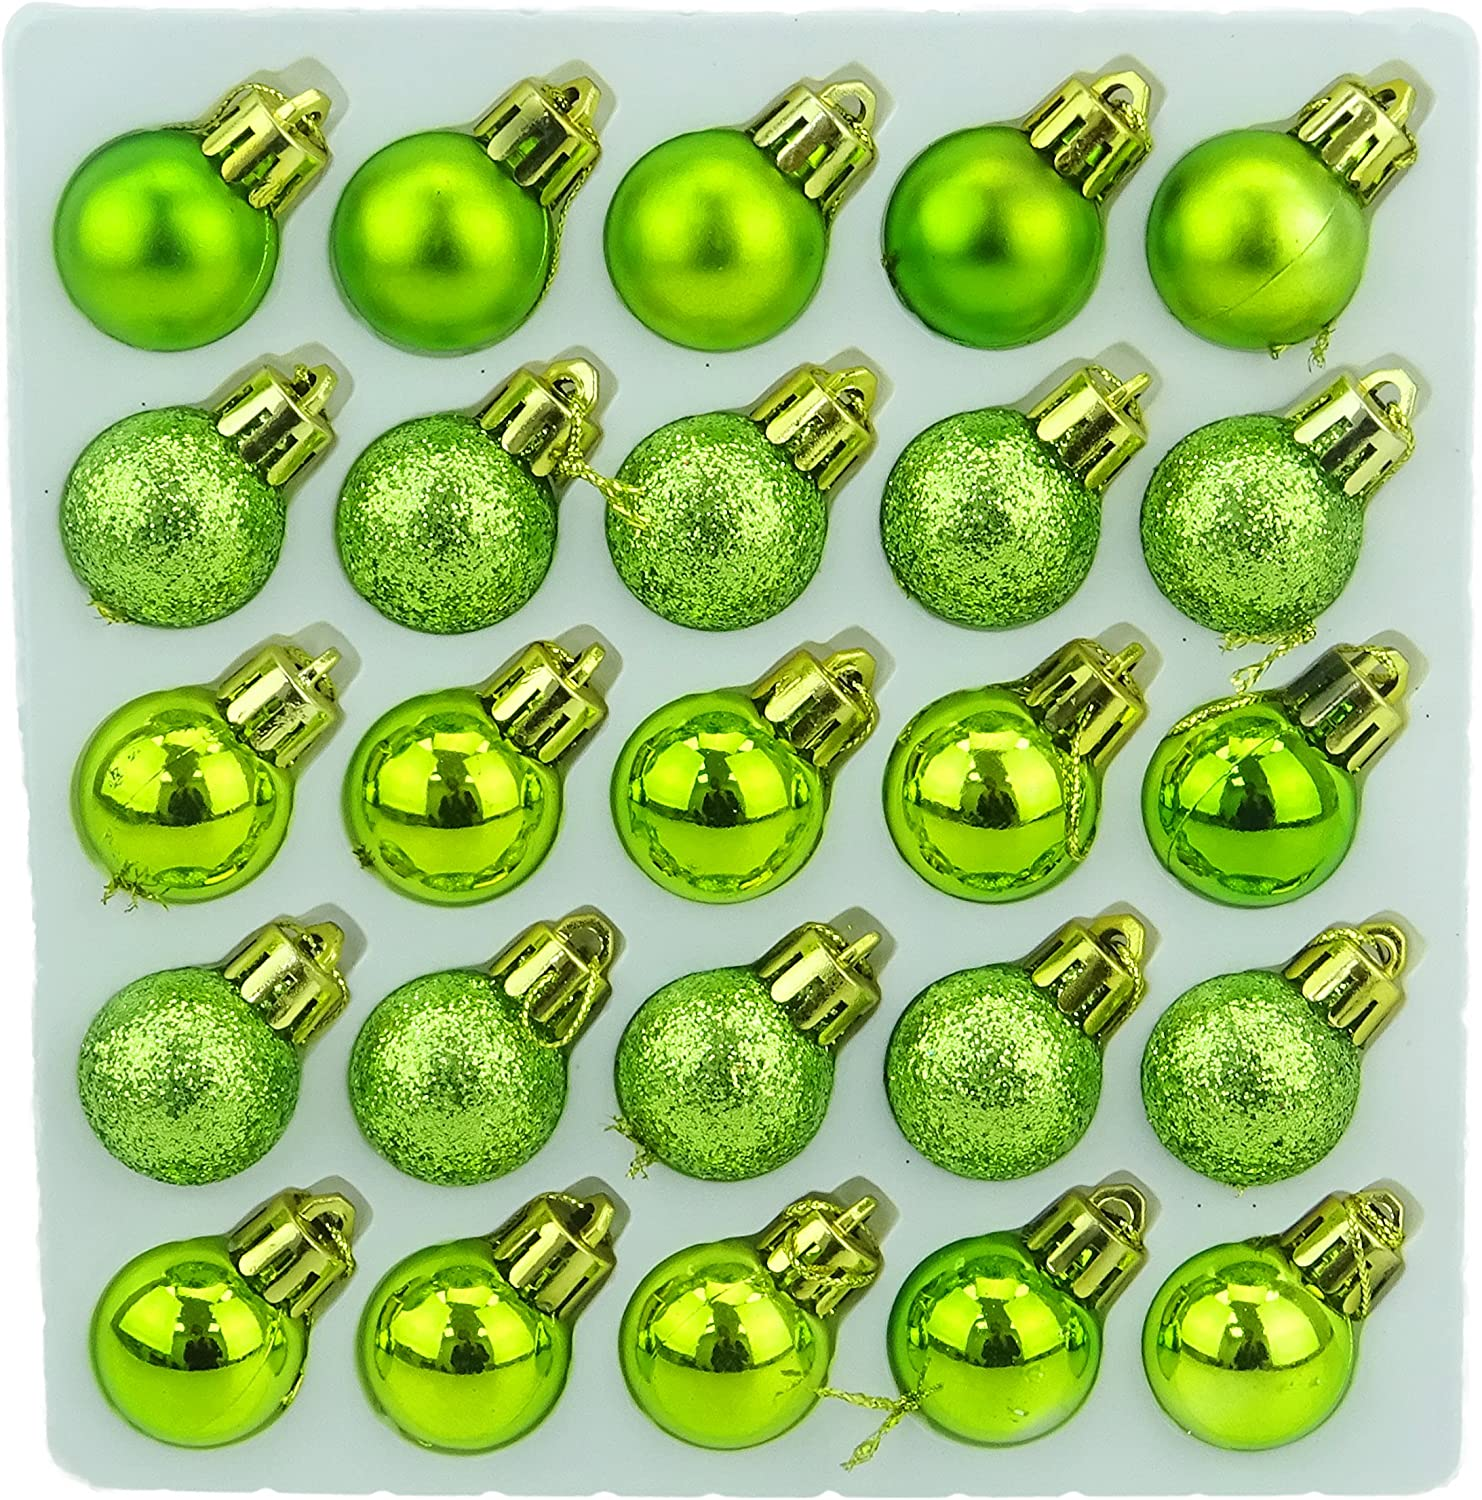 Christmas Concepts Pack of 25-25mm Mini Christmas Tree Baubles - Shiny, Matte & Glitter Decorated Baubles (Lime Green)